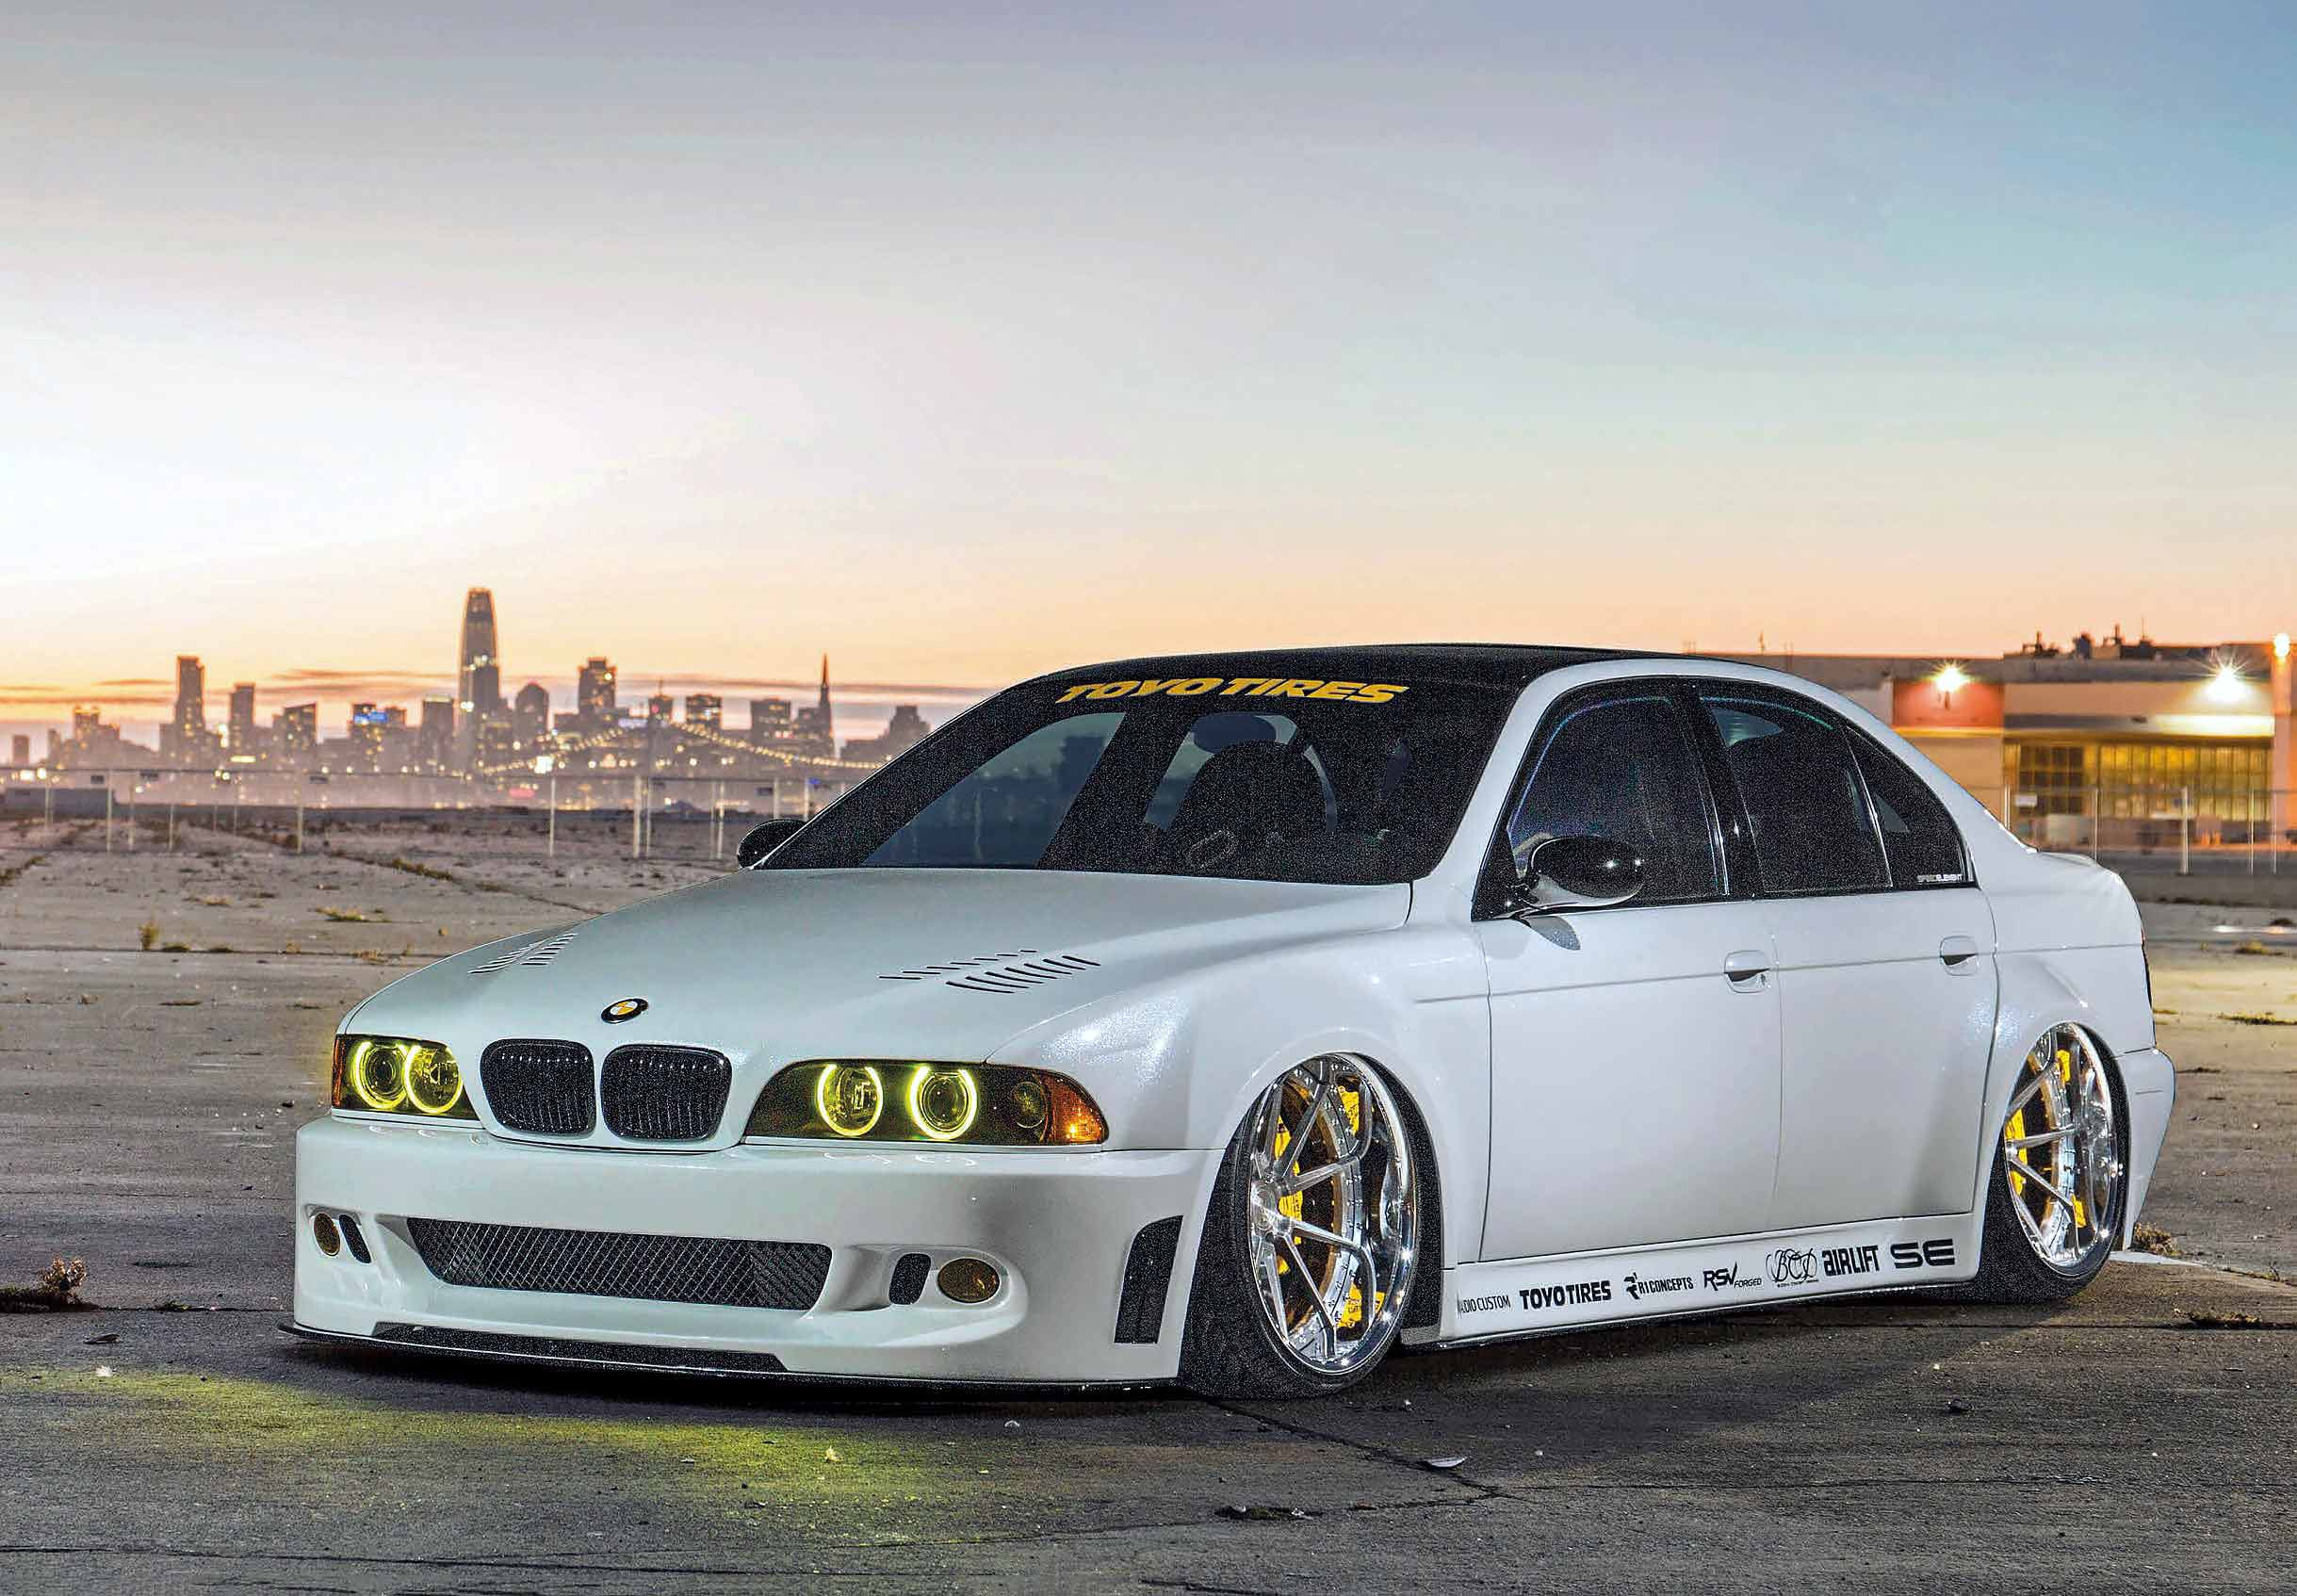 Tuned 560hp Supercharged Custom Metal Wide Body Bmw M5 E39 Drive My Blogs Drive